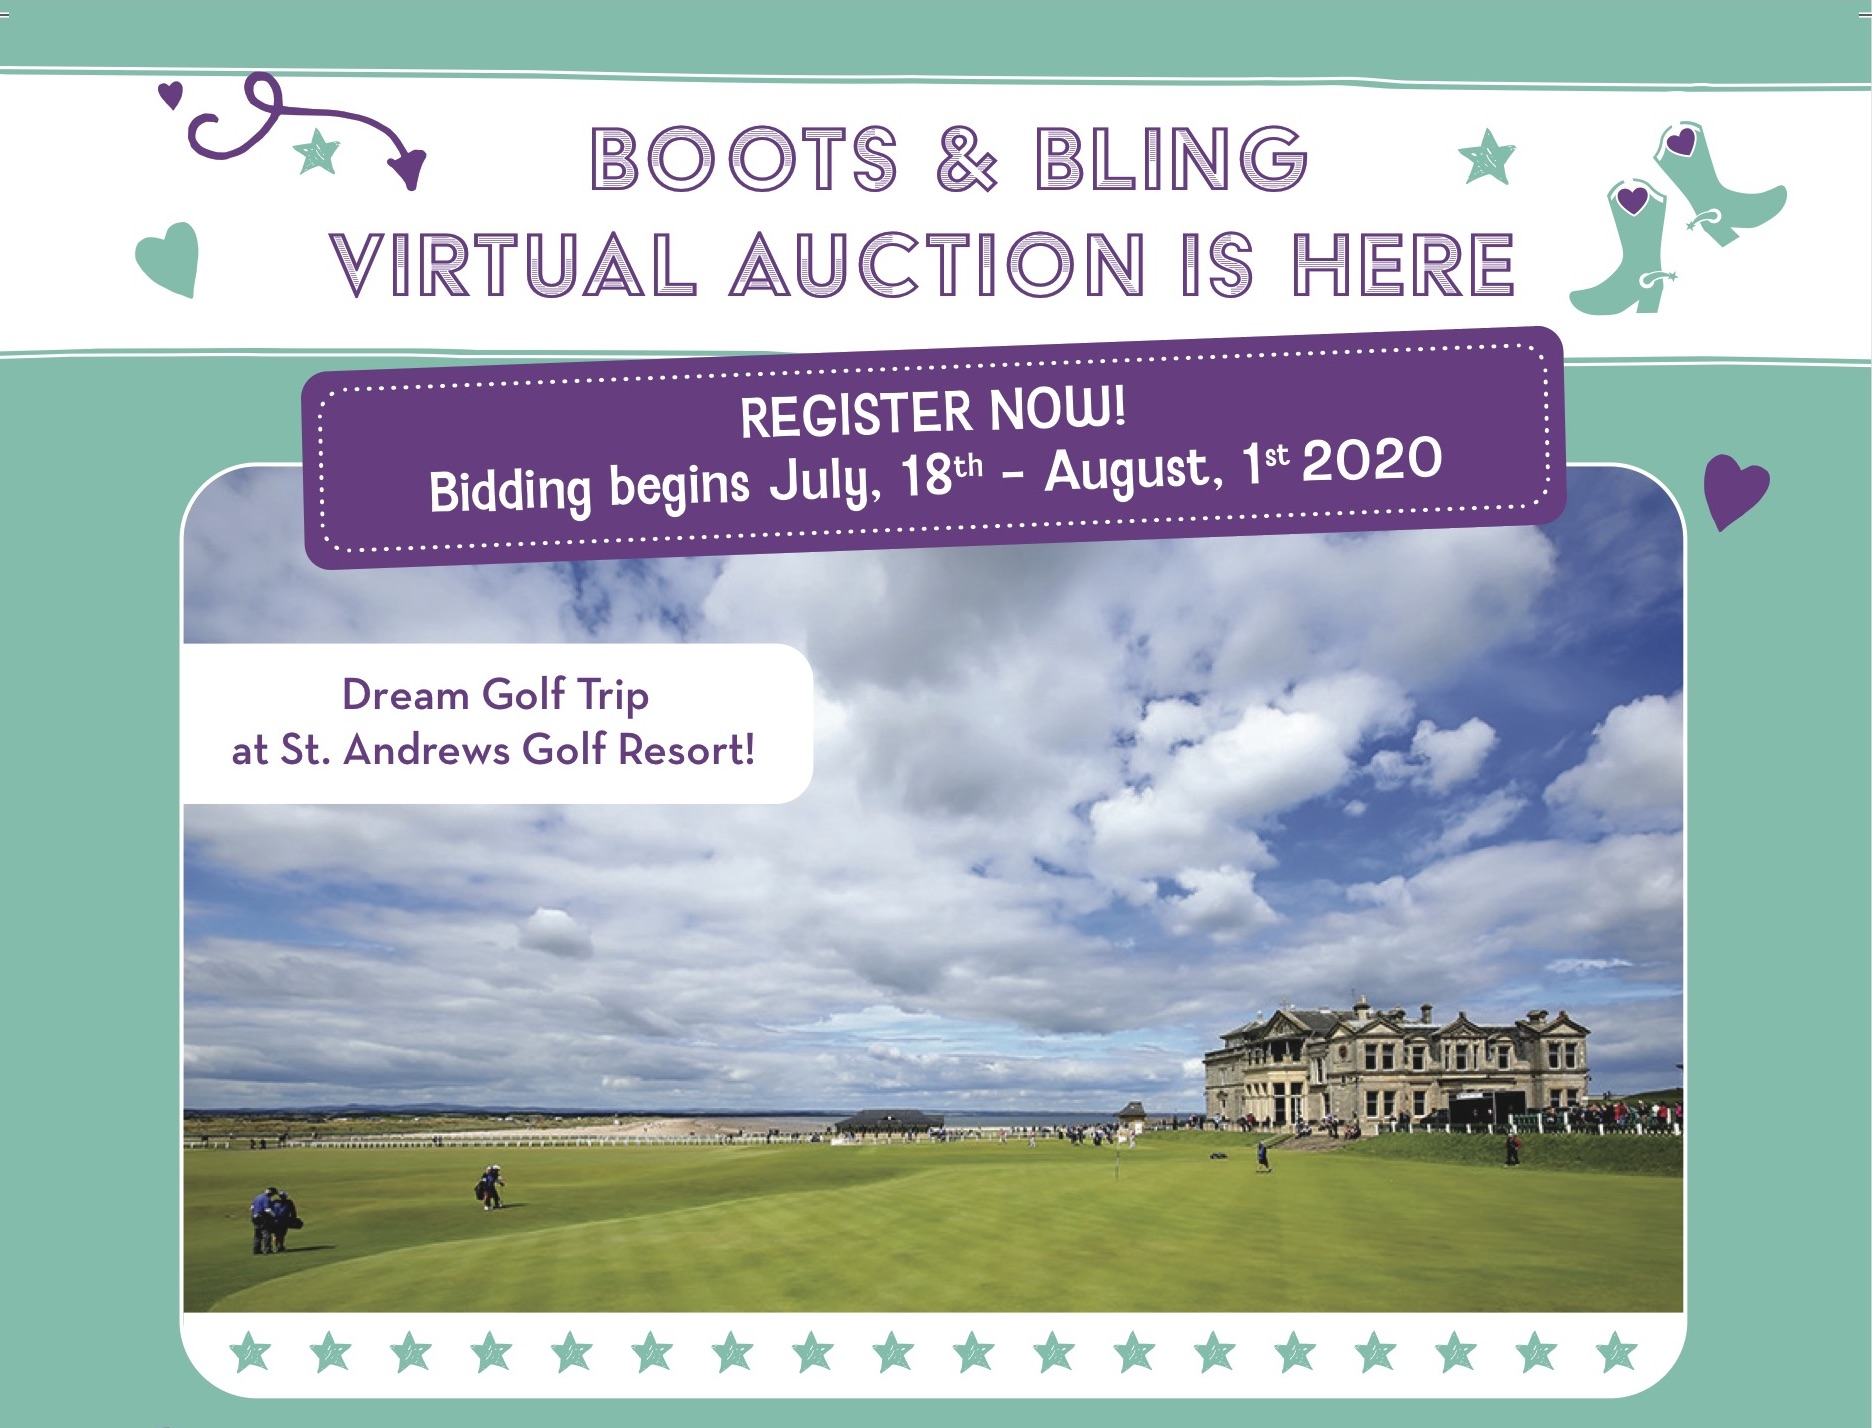 Boots & Bling Virtual Auction